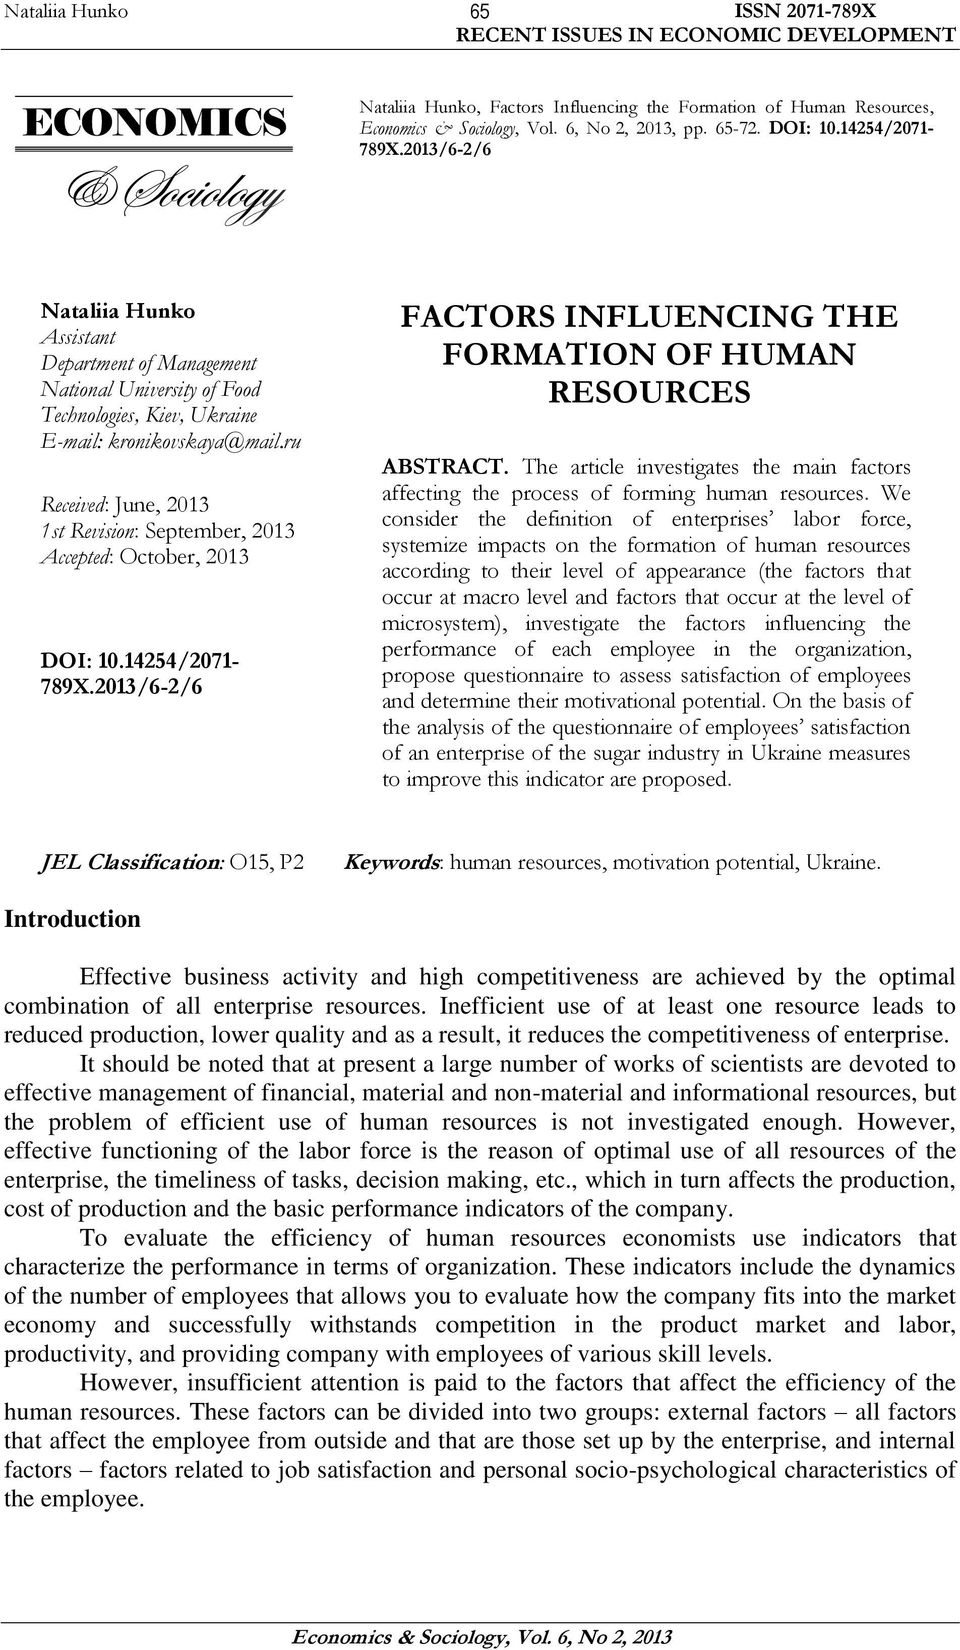 ru Received: June, 2013 1st Revision: September, 2013 Accepted: October, 2013 DOI: 10.14254/2071-789X.2013/6-2/6 FACTORS INFLUENCING THE FORMATION OF HUMAN RESOURCES ABSTRACT.